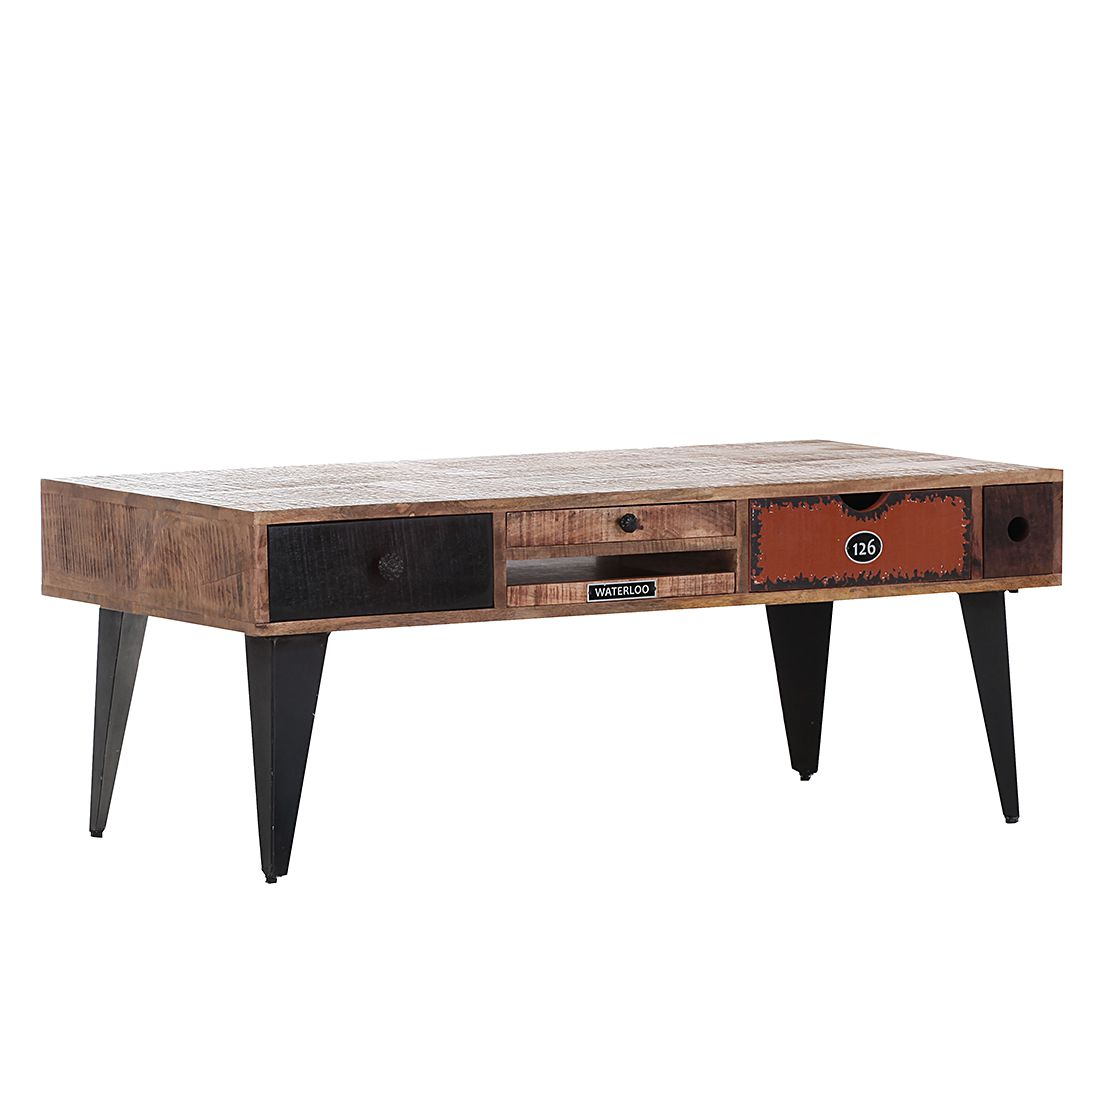 table basse subway manguier massif ars manufacti par ars manufacti chez home24 fr. Black Bedroom Furniture Sets. Home Design Ideas